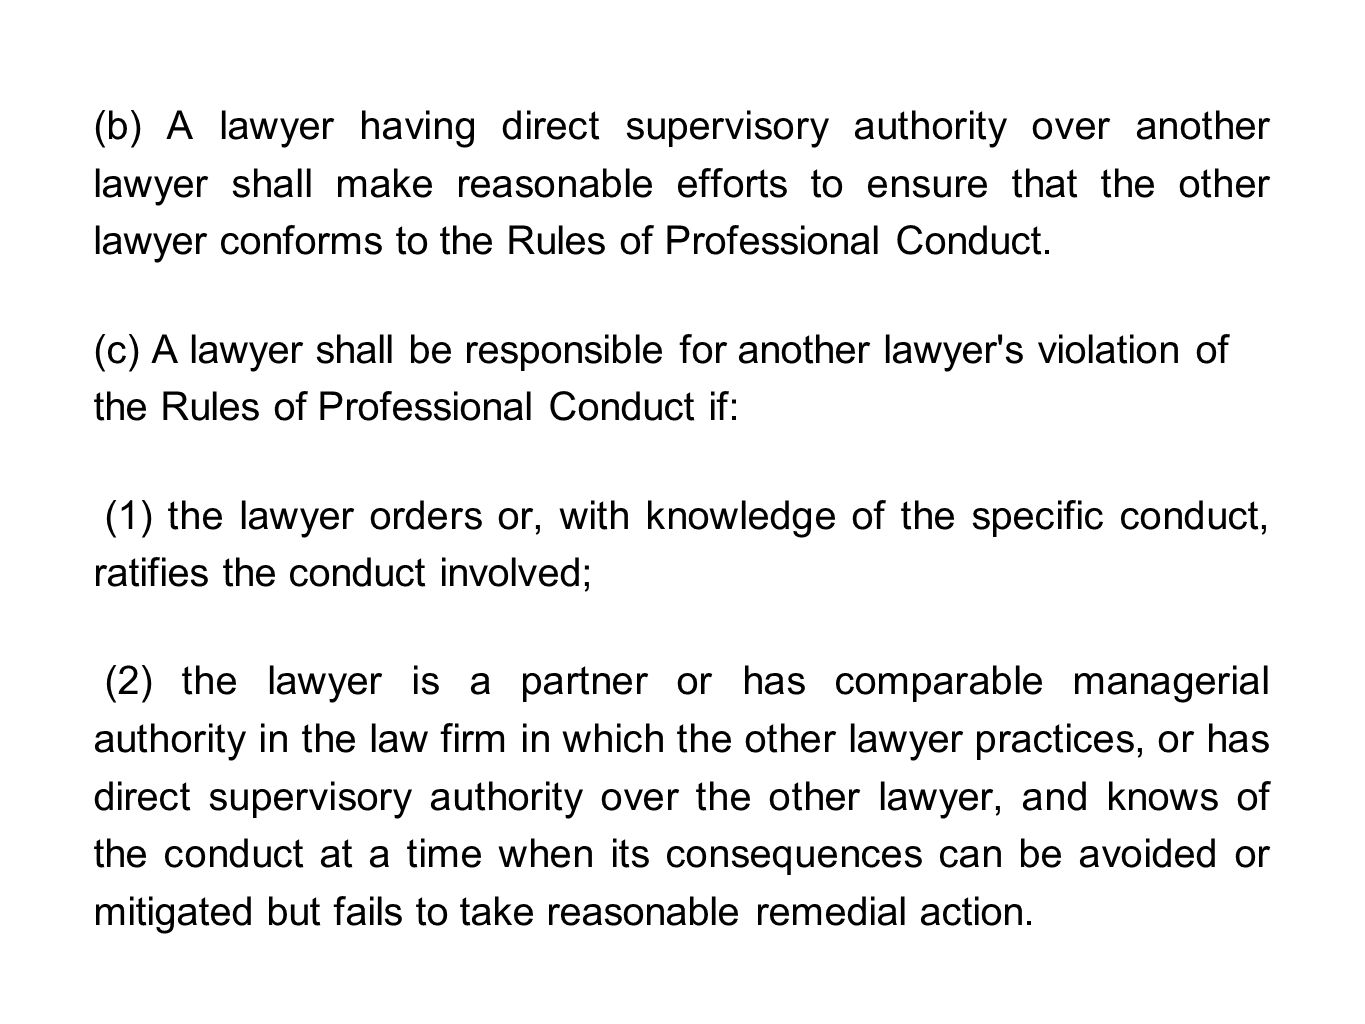 (b) A lawyer having direct supervisory authority over another lawyer shall make reasonable efforts to ensure that the other lawyer conforms to the Rul